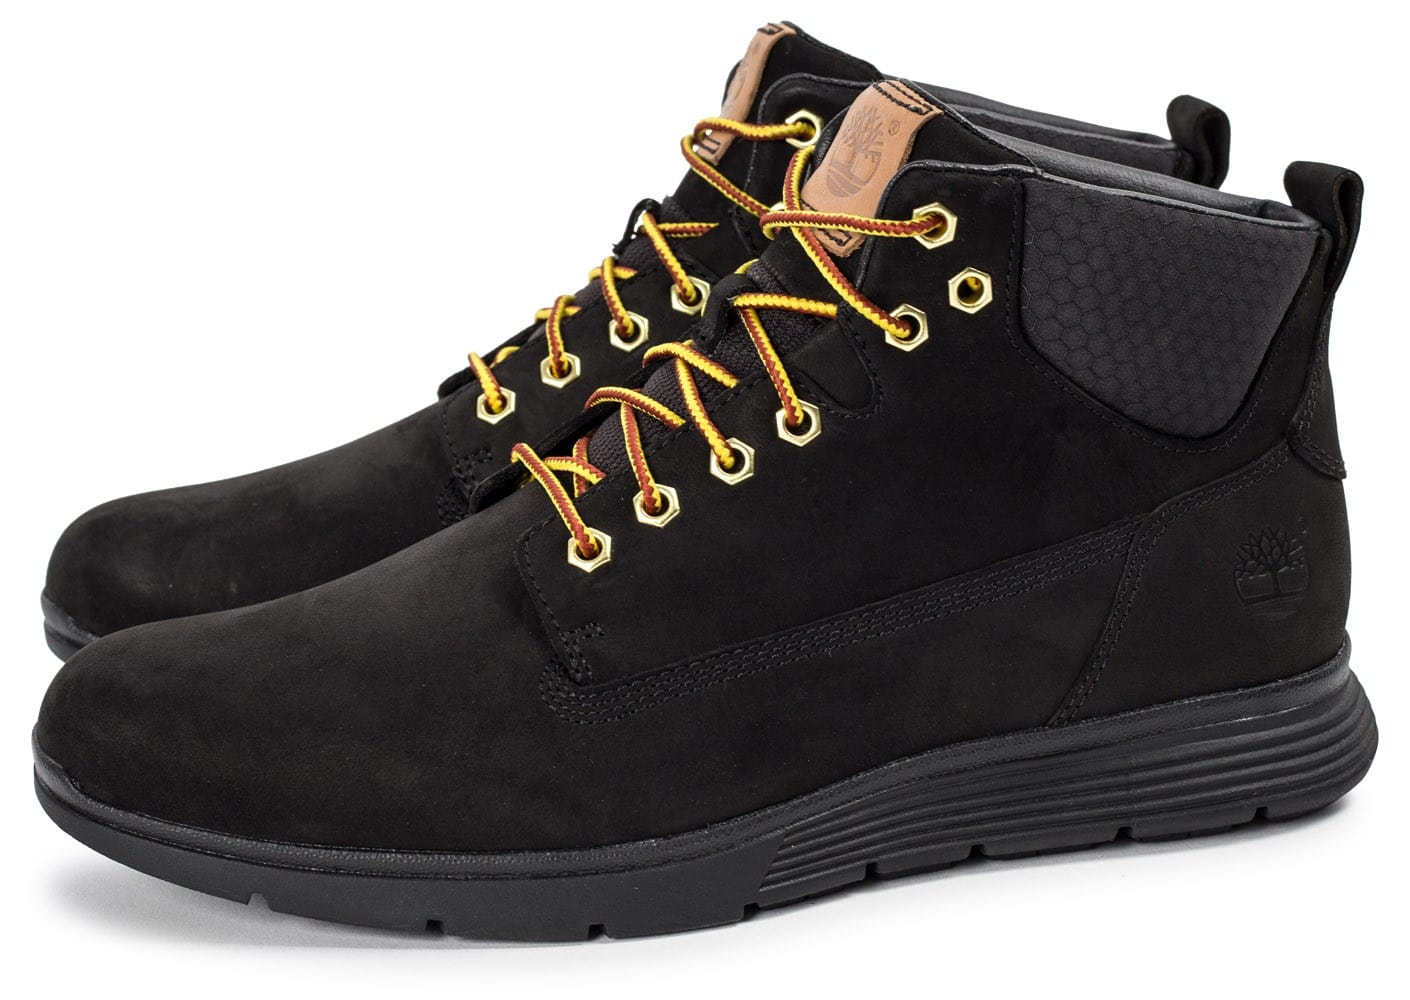 Chaussures Timberland noires homme